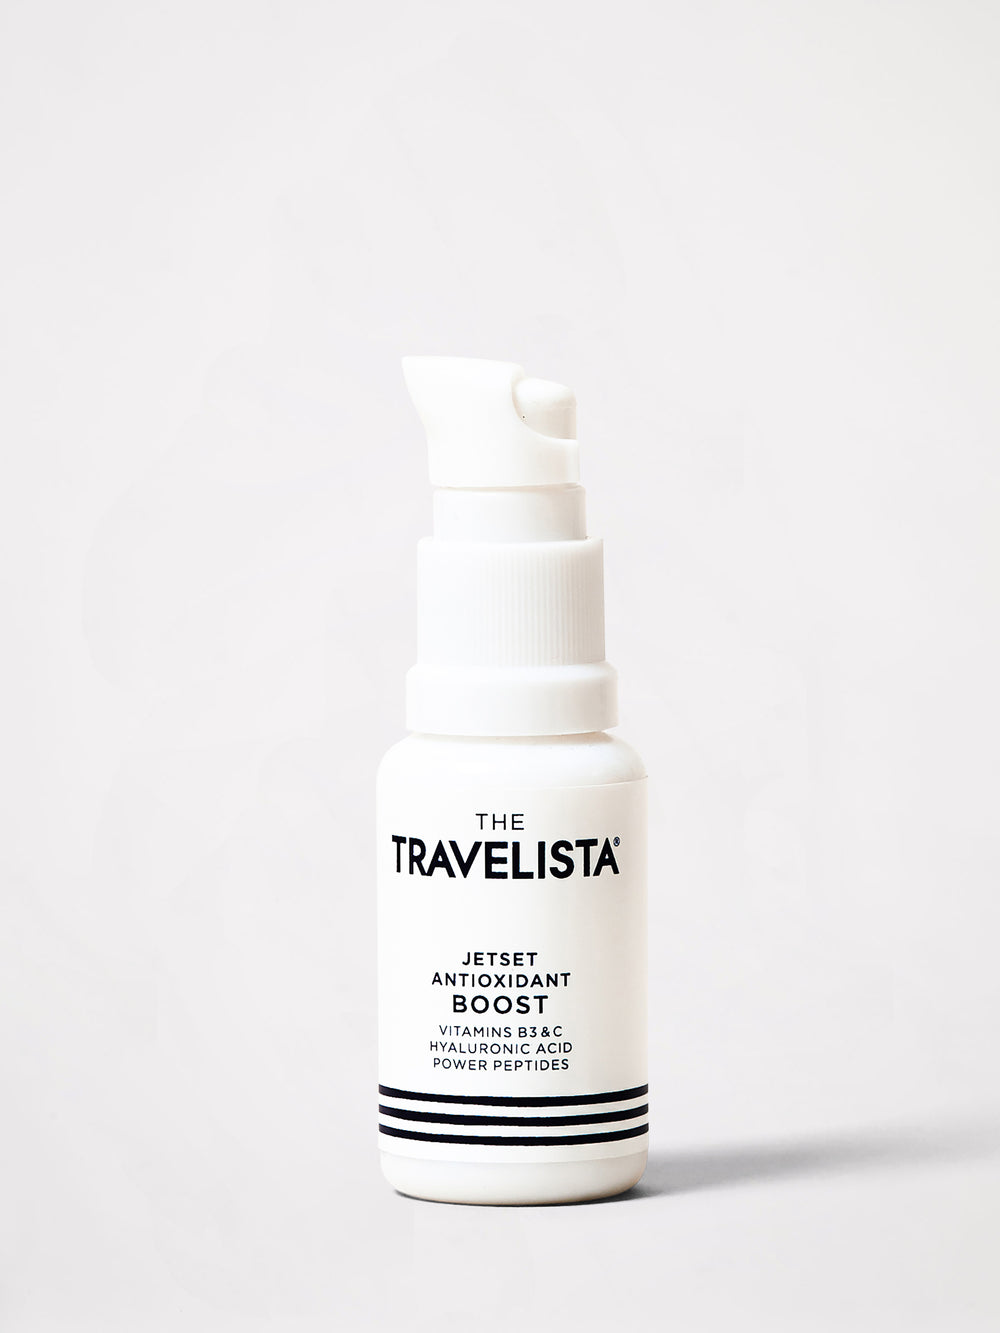 the travelista jetset antioxidant boost